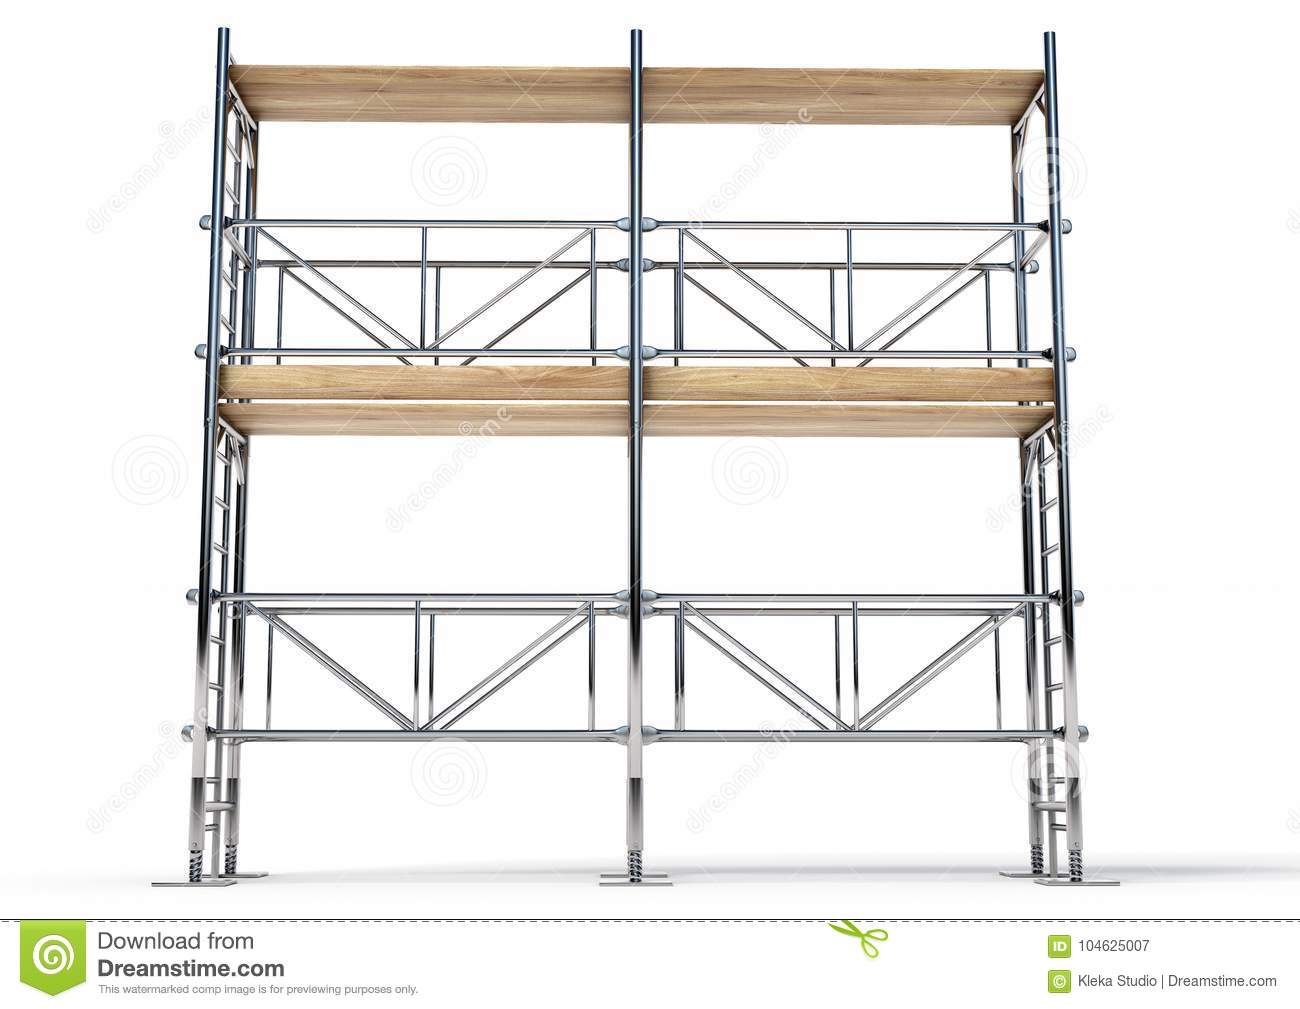 Free download scaffolding design software pushstrongwind2x.